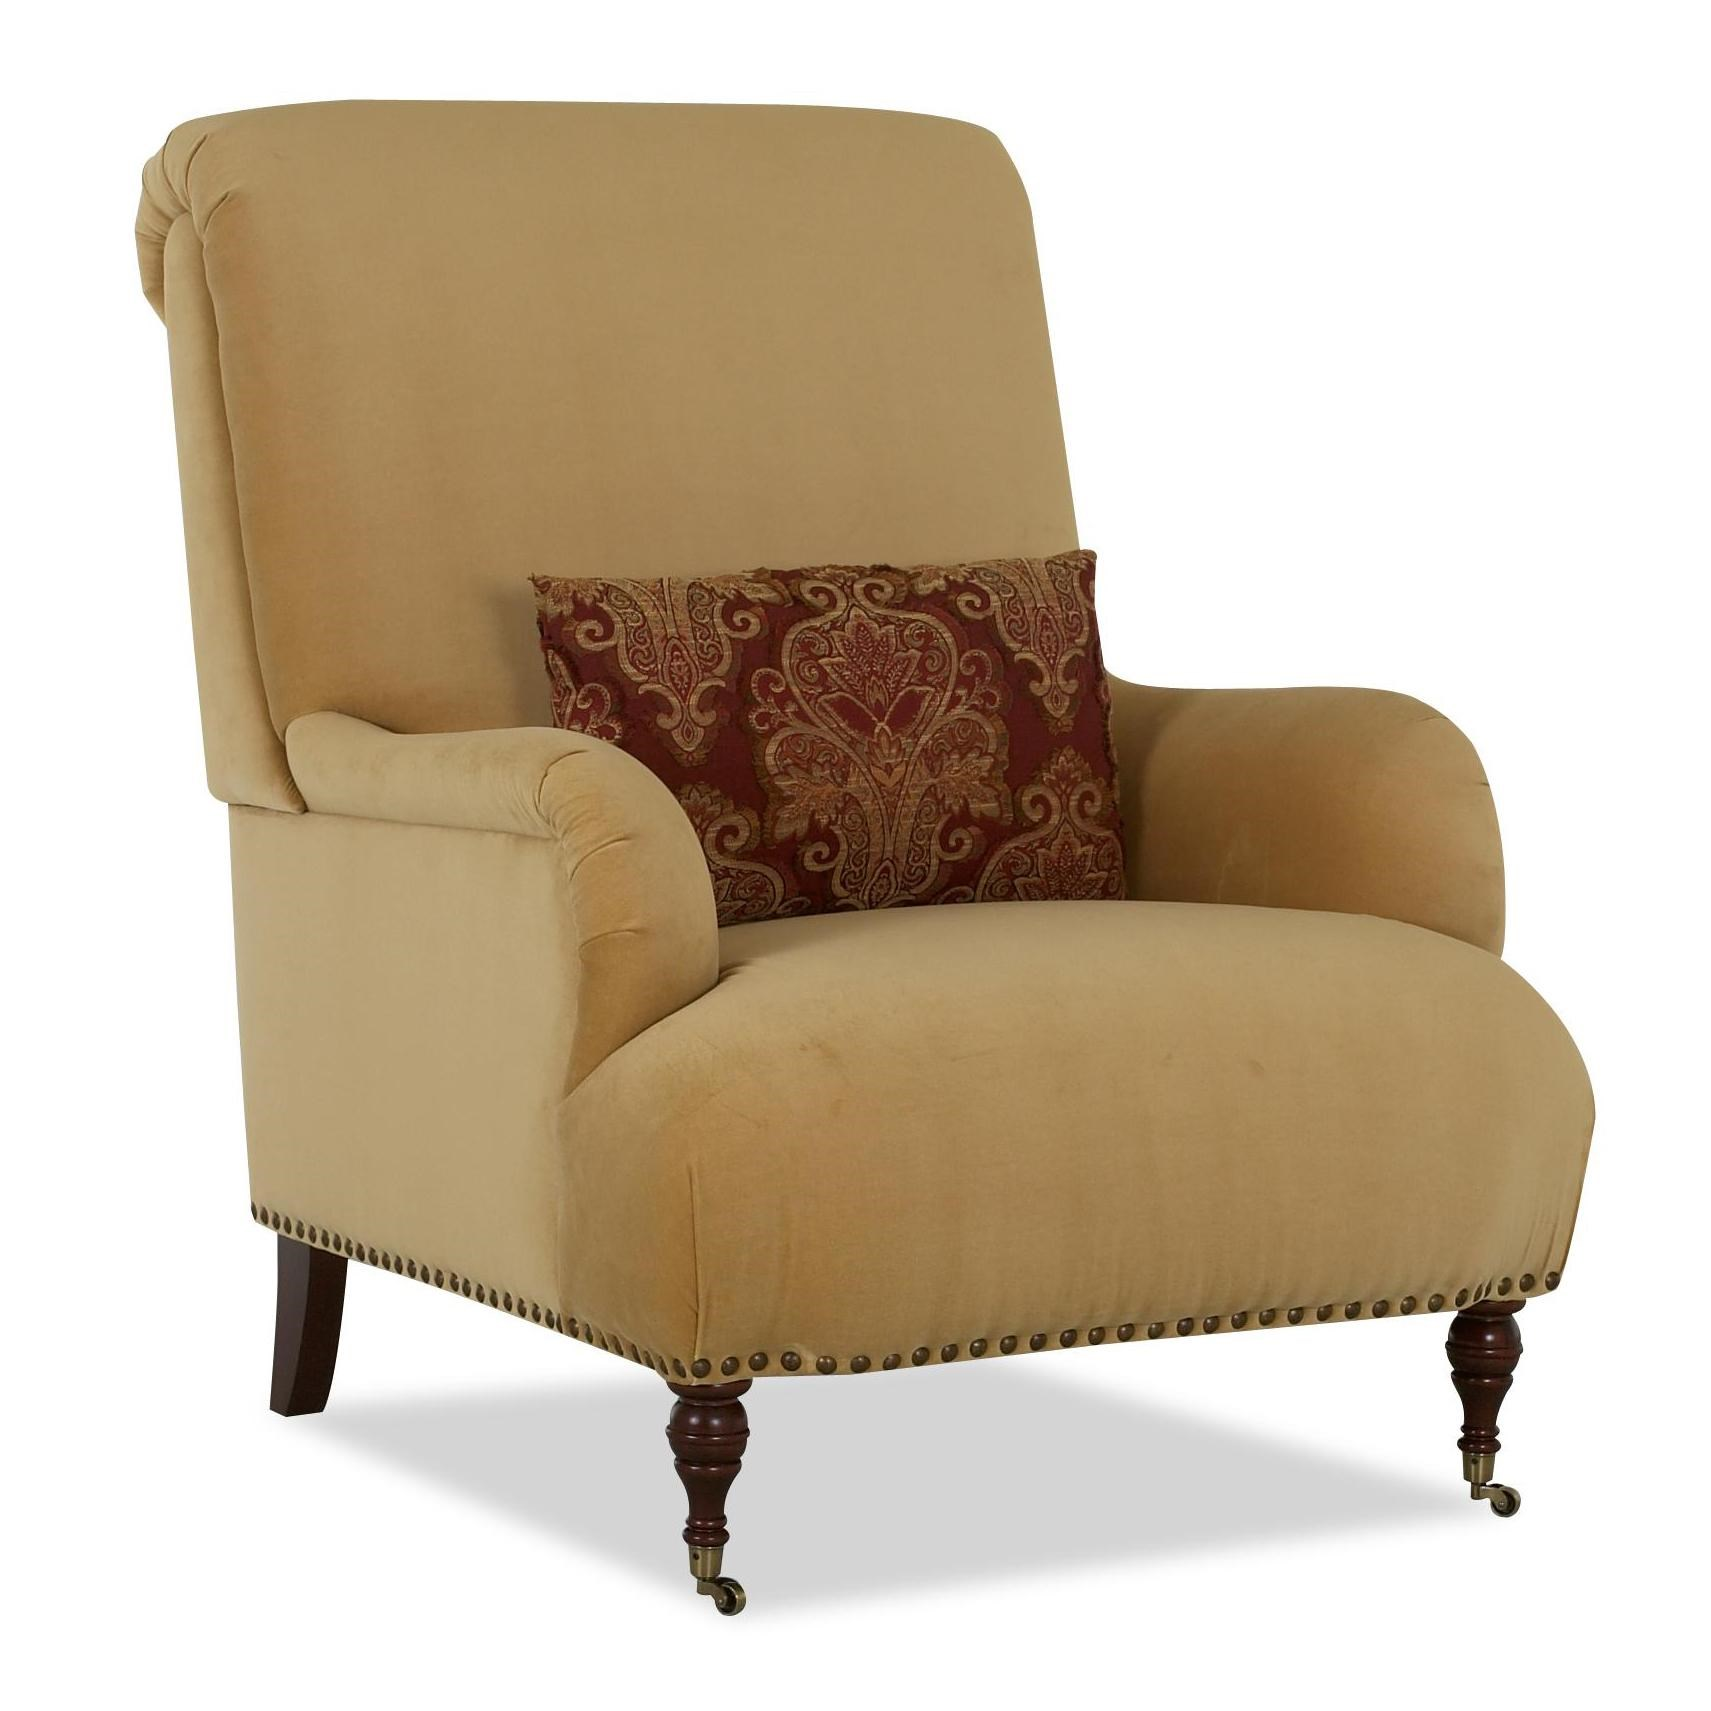 Captivating ... Klaussner Chairs And AccentsDapper Accent Chair ...